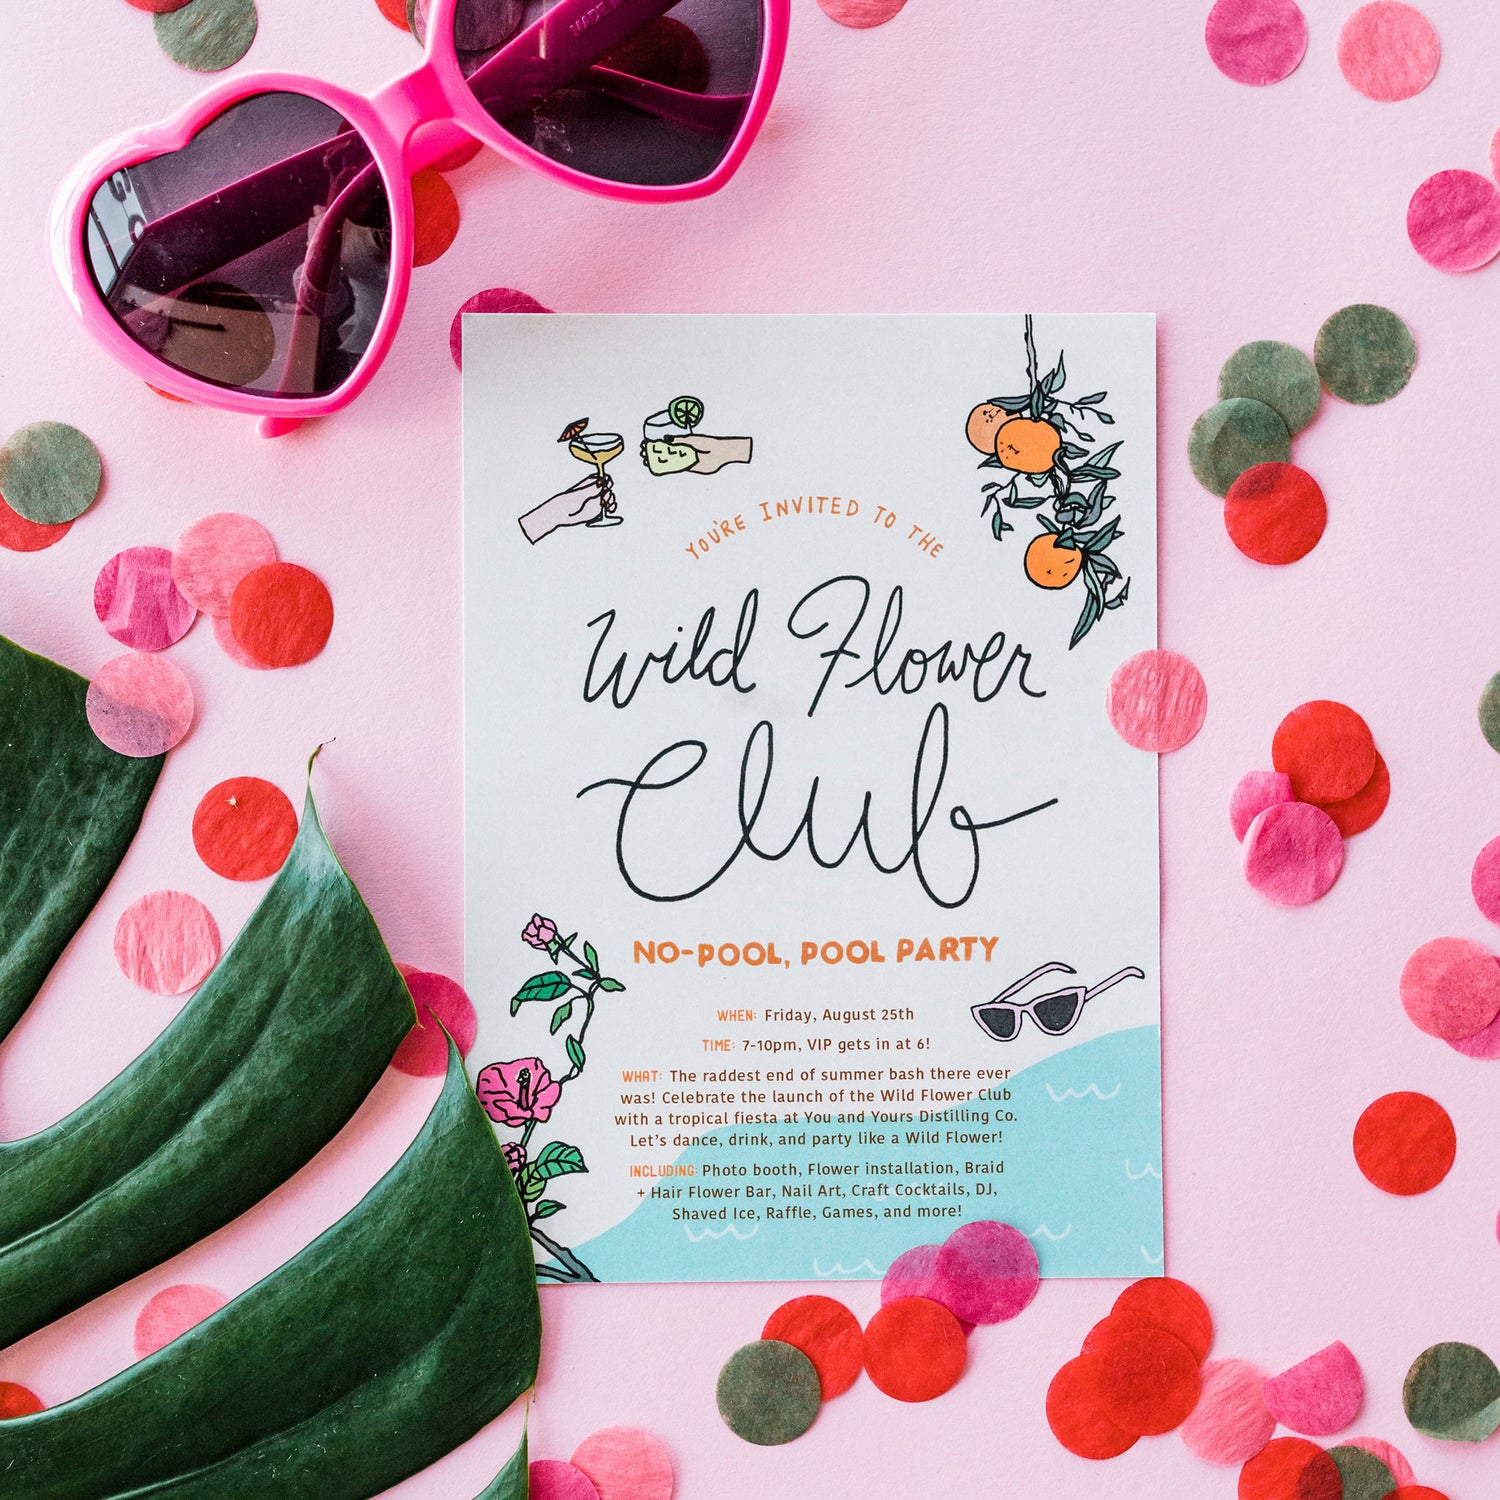 "<h3 style=""color:#fff;"">Join us for our first Wild Flower Club No-Pool, Pool Party!</h3>"